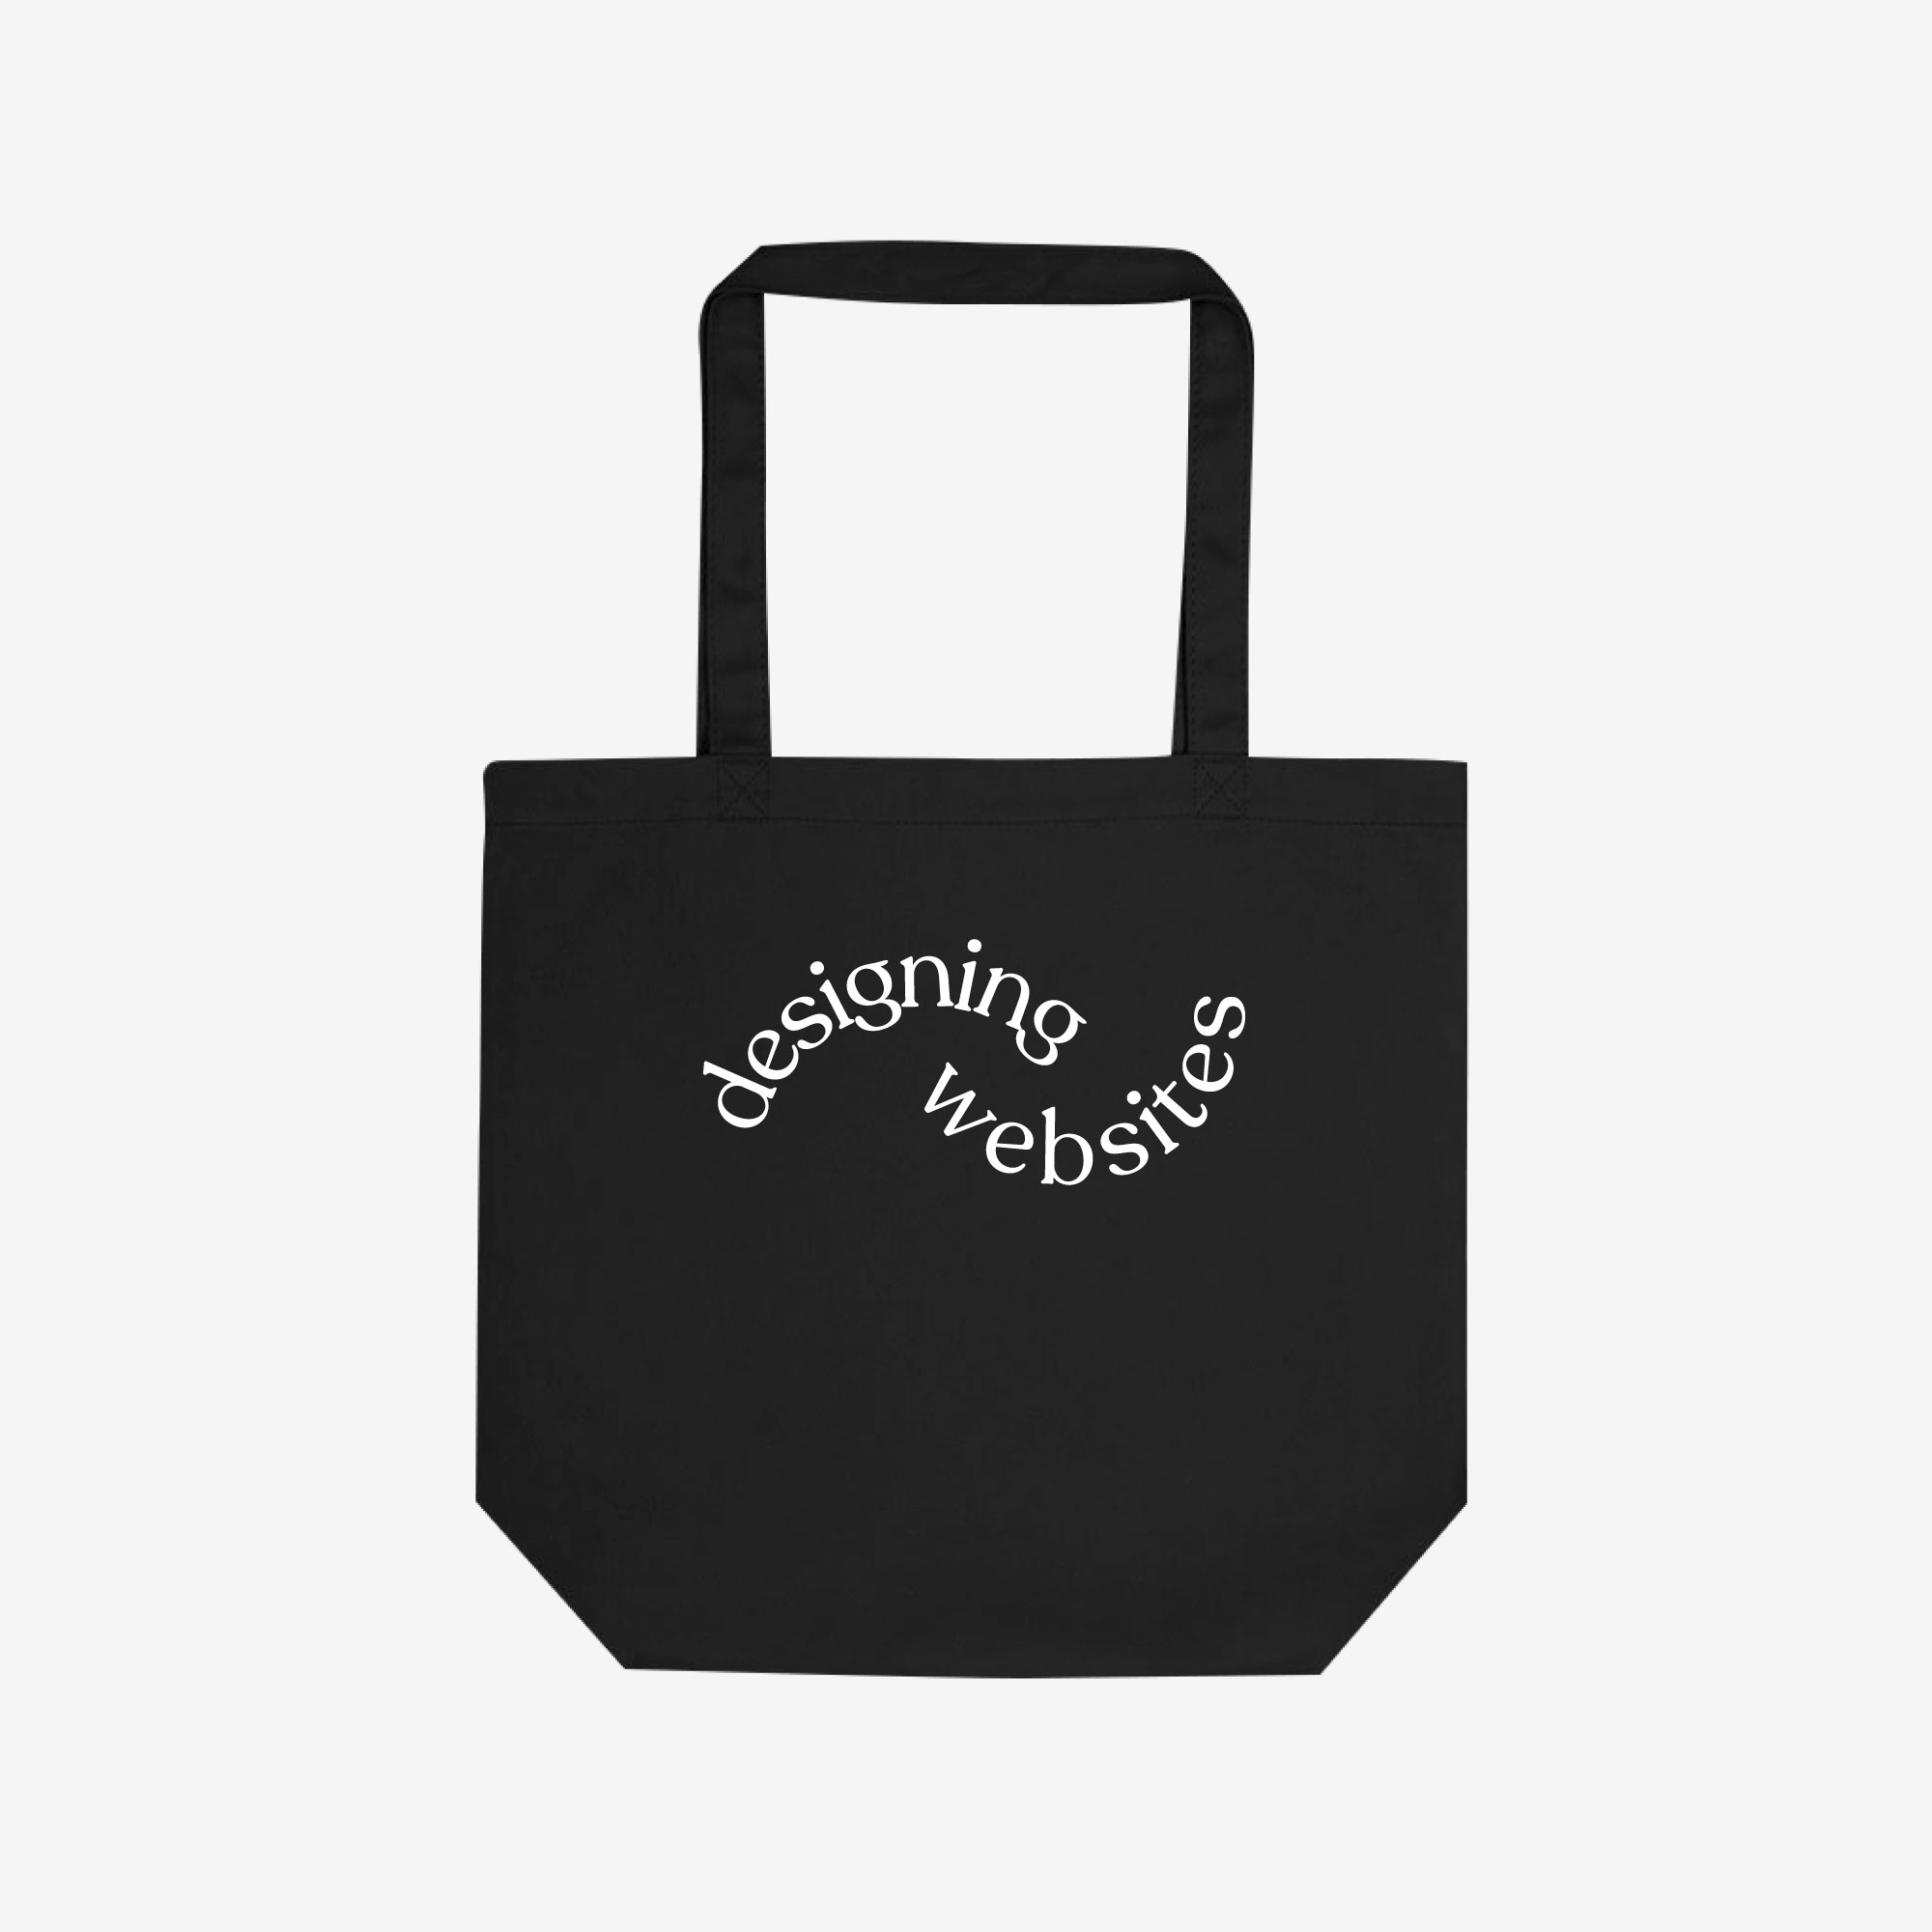 """A black cotton tote bag with curved white text across the middle saying """"designing websites."""""""